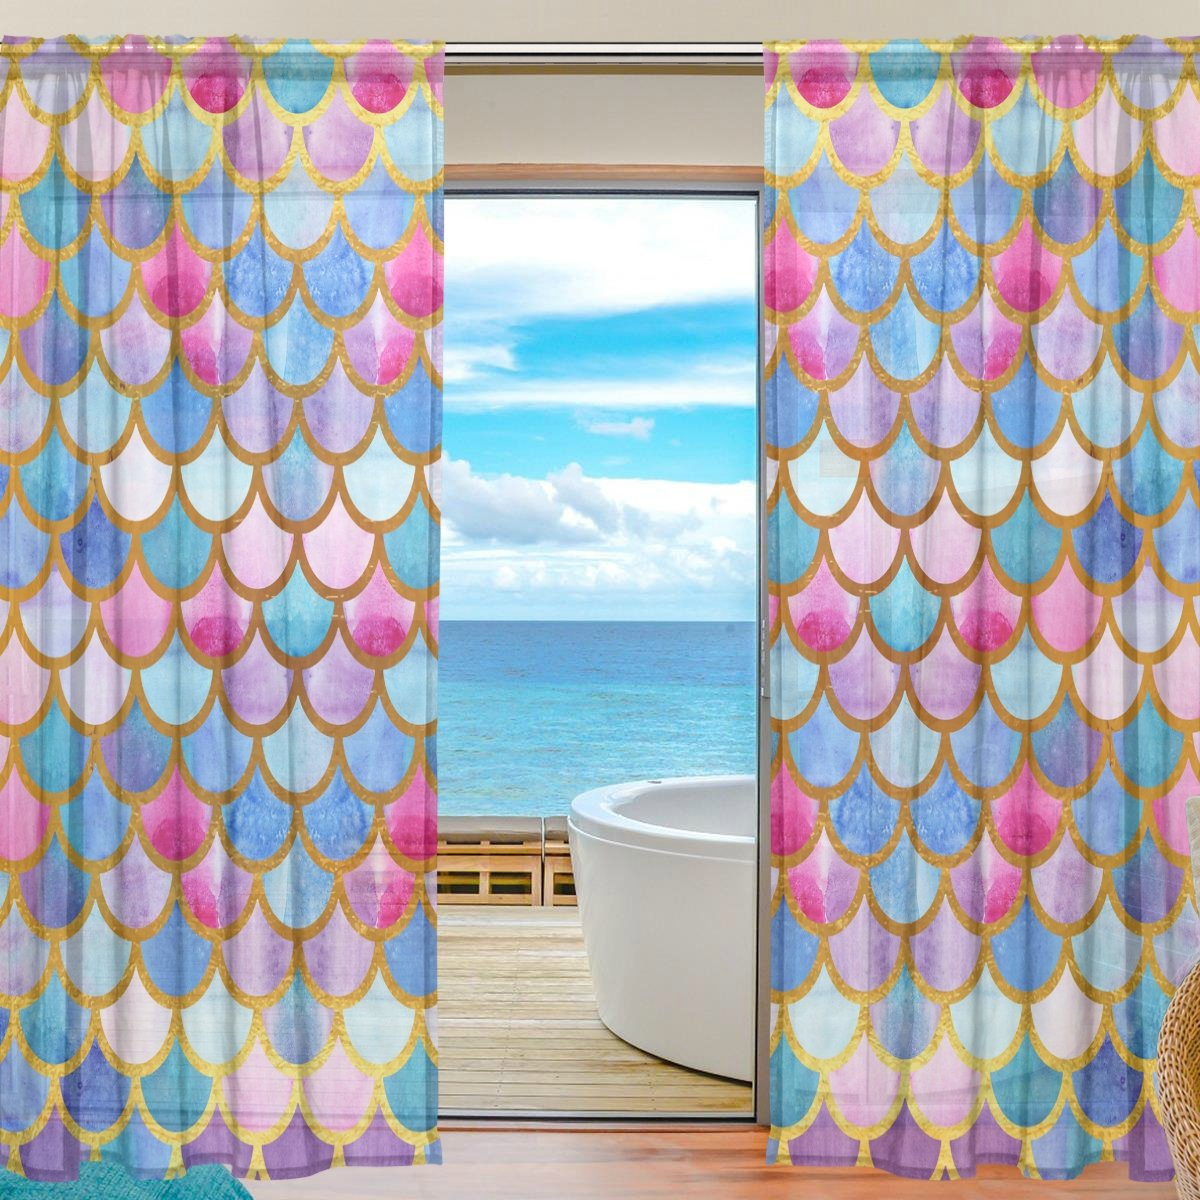 SEULIFE Window Sheer Curtain, Sea Ocean Animal Mermaid Fish Scales Voile Curtain Drapes for Door Kitchen Living Room Bedroom 55x78 inches 2 Panels